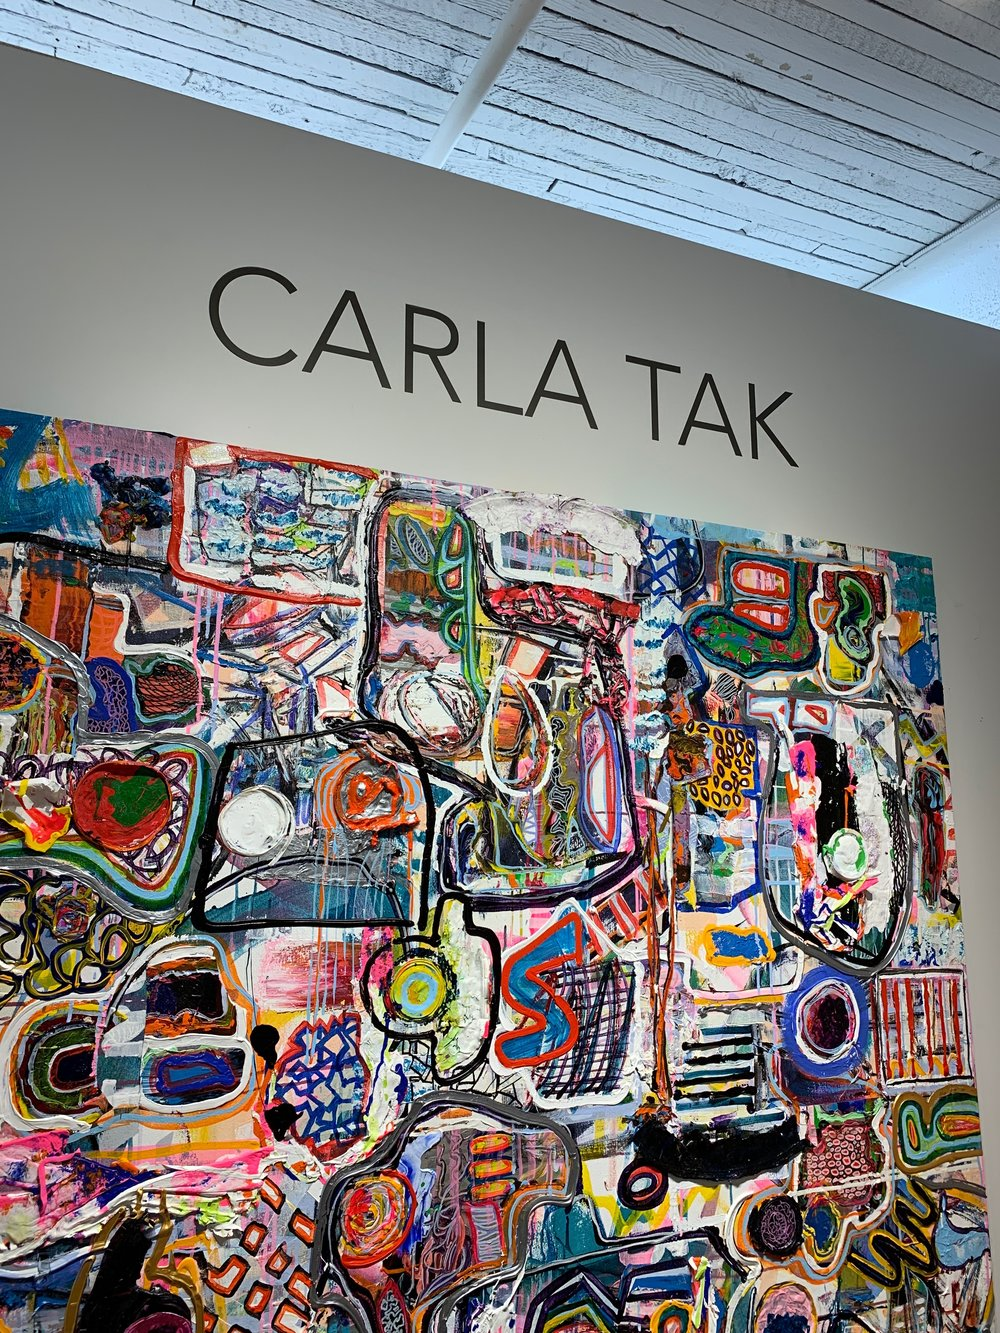 Carla Tak uses layering techniques, paint buckets, etc!